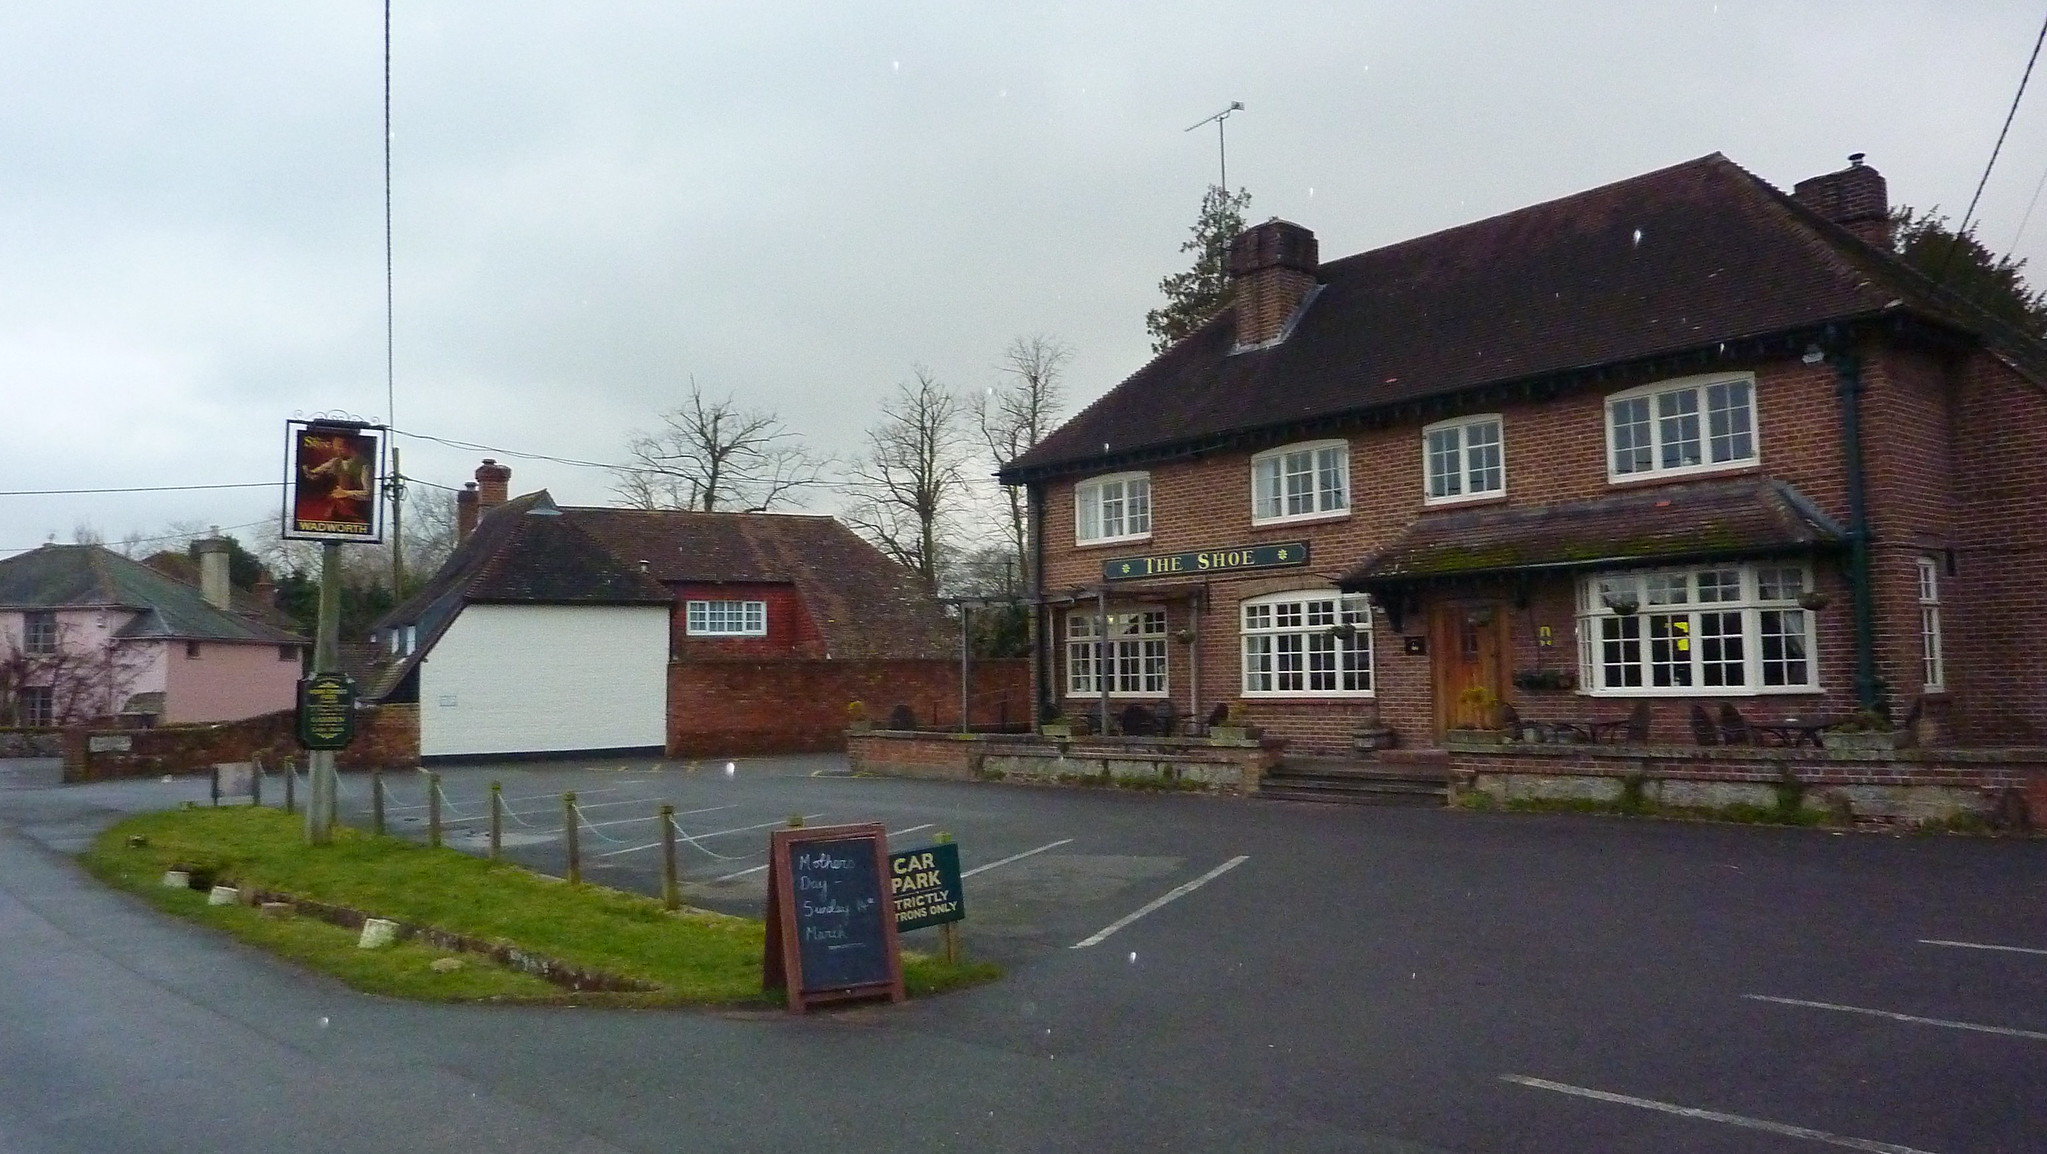 The Shoe pub in Exton